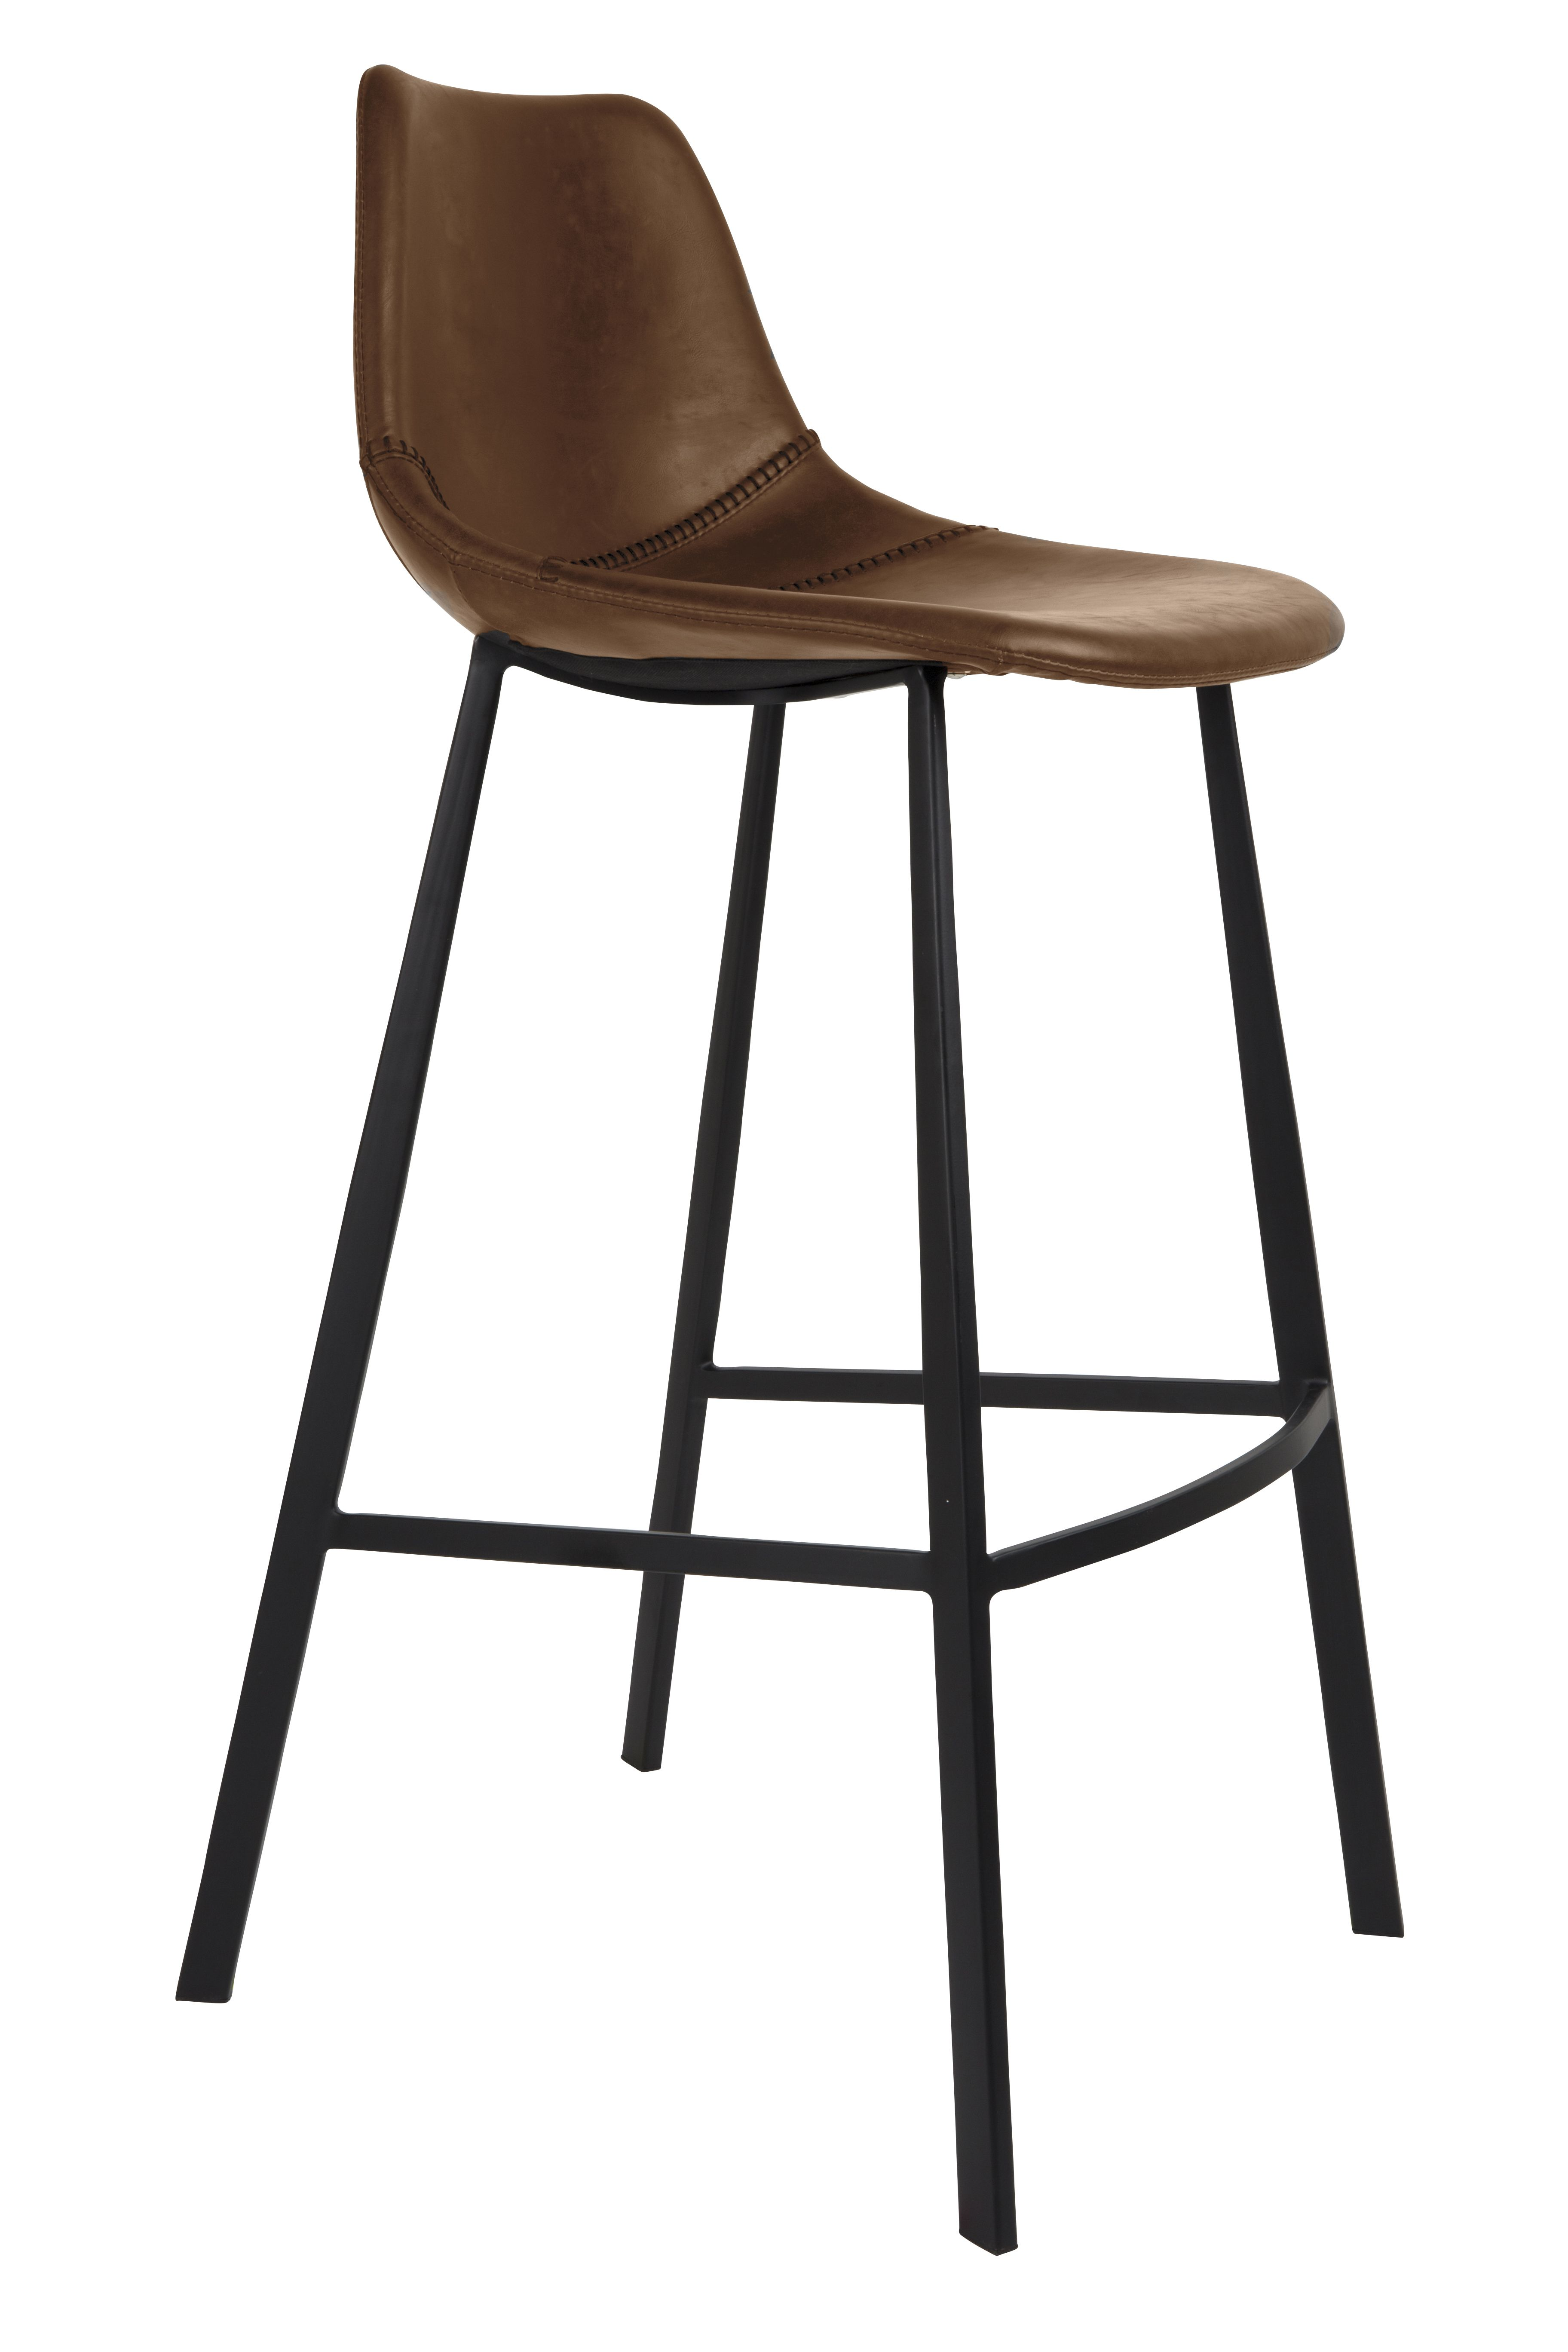 Franky barstool Brown Chairs Pinterest